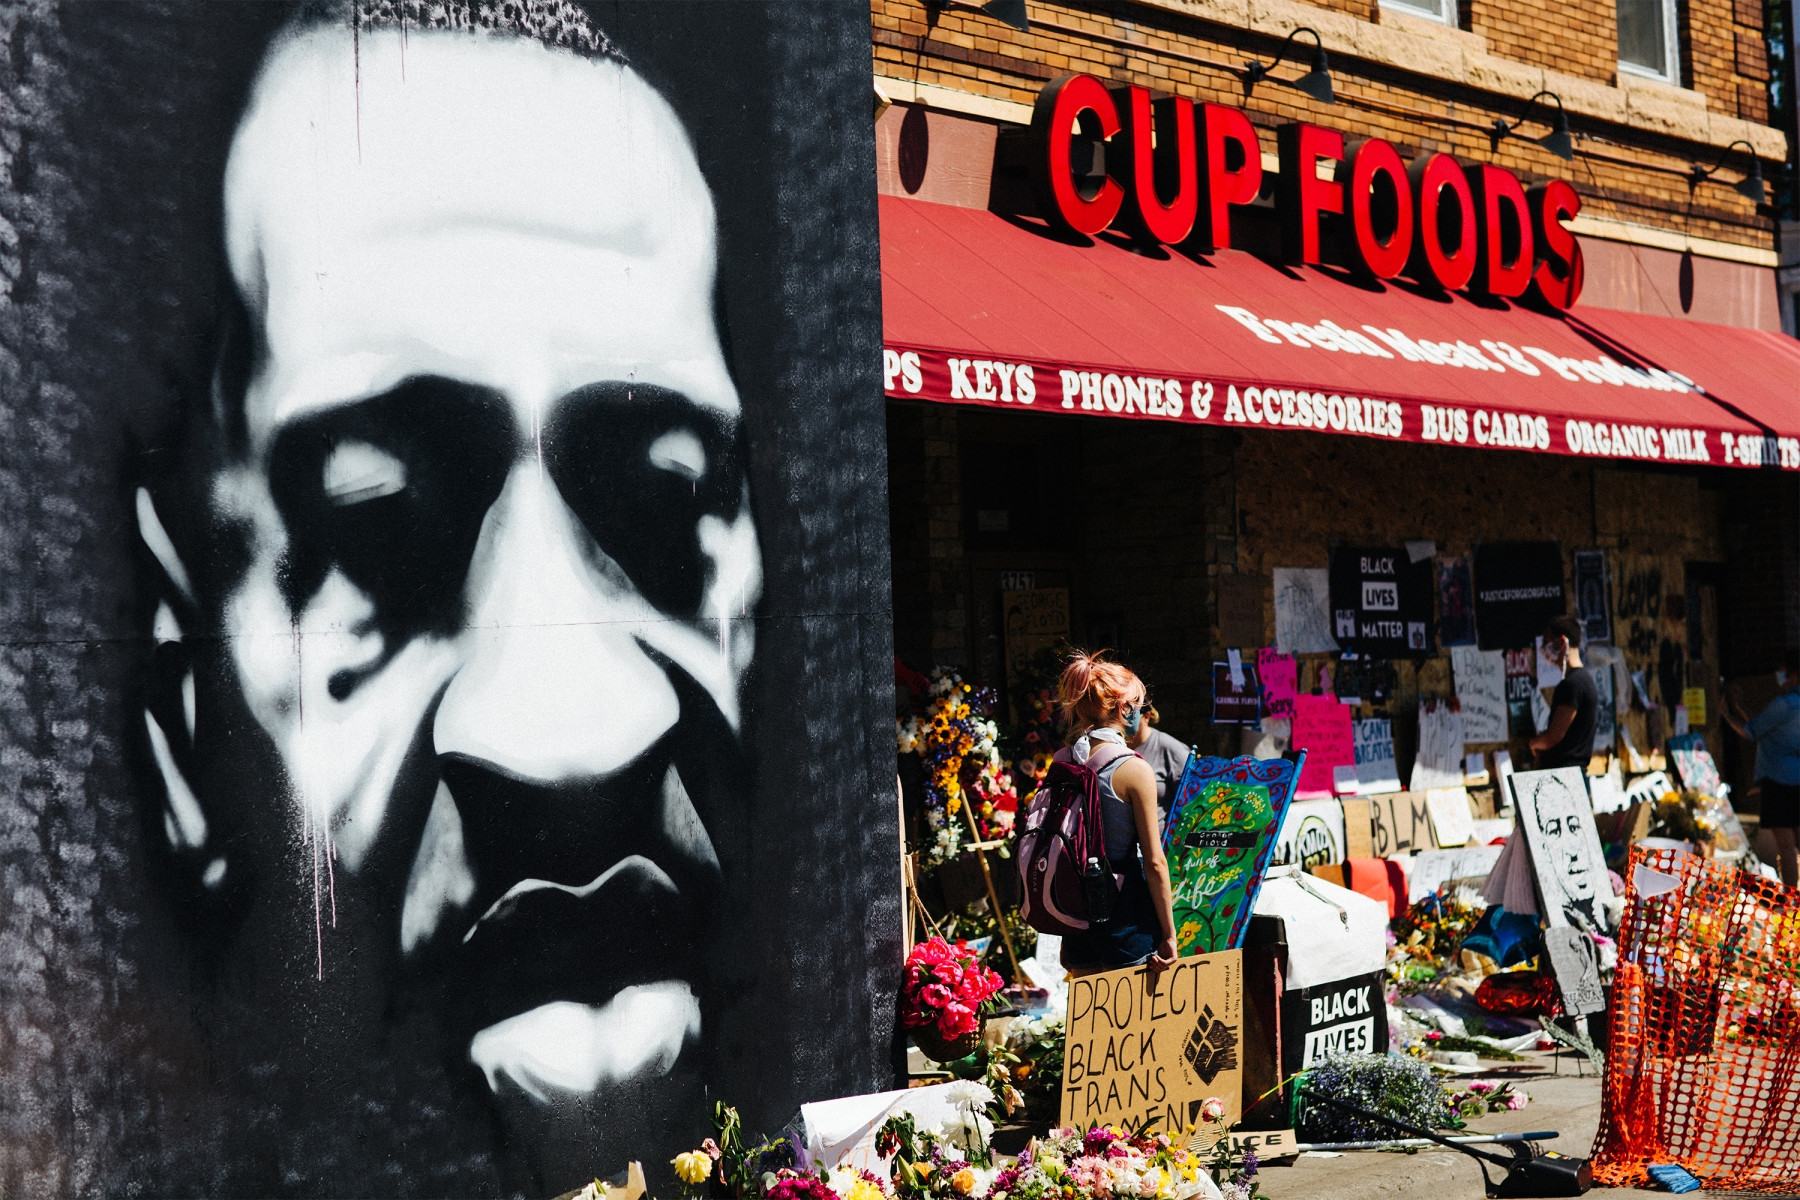 Black and white mural of George Floyd outside Cup Foods in Minneapolis